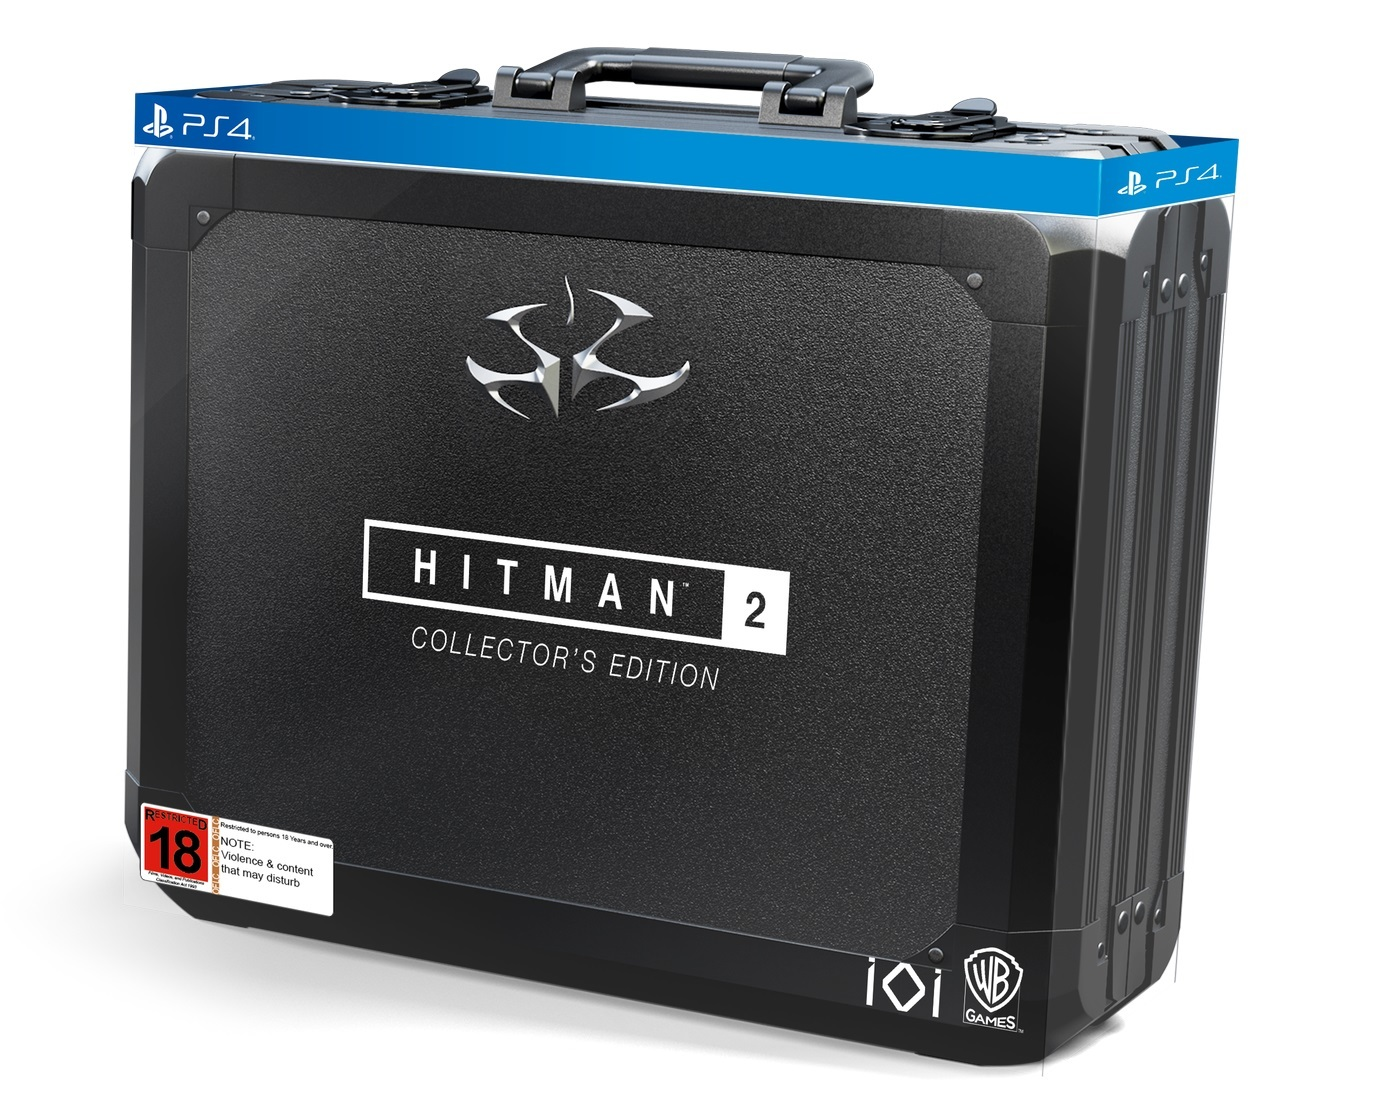 Hitman 2 Collector's Edition for PS4 image